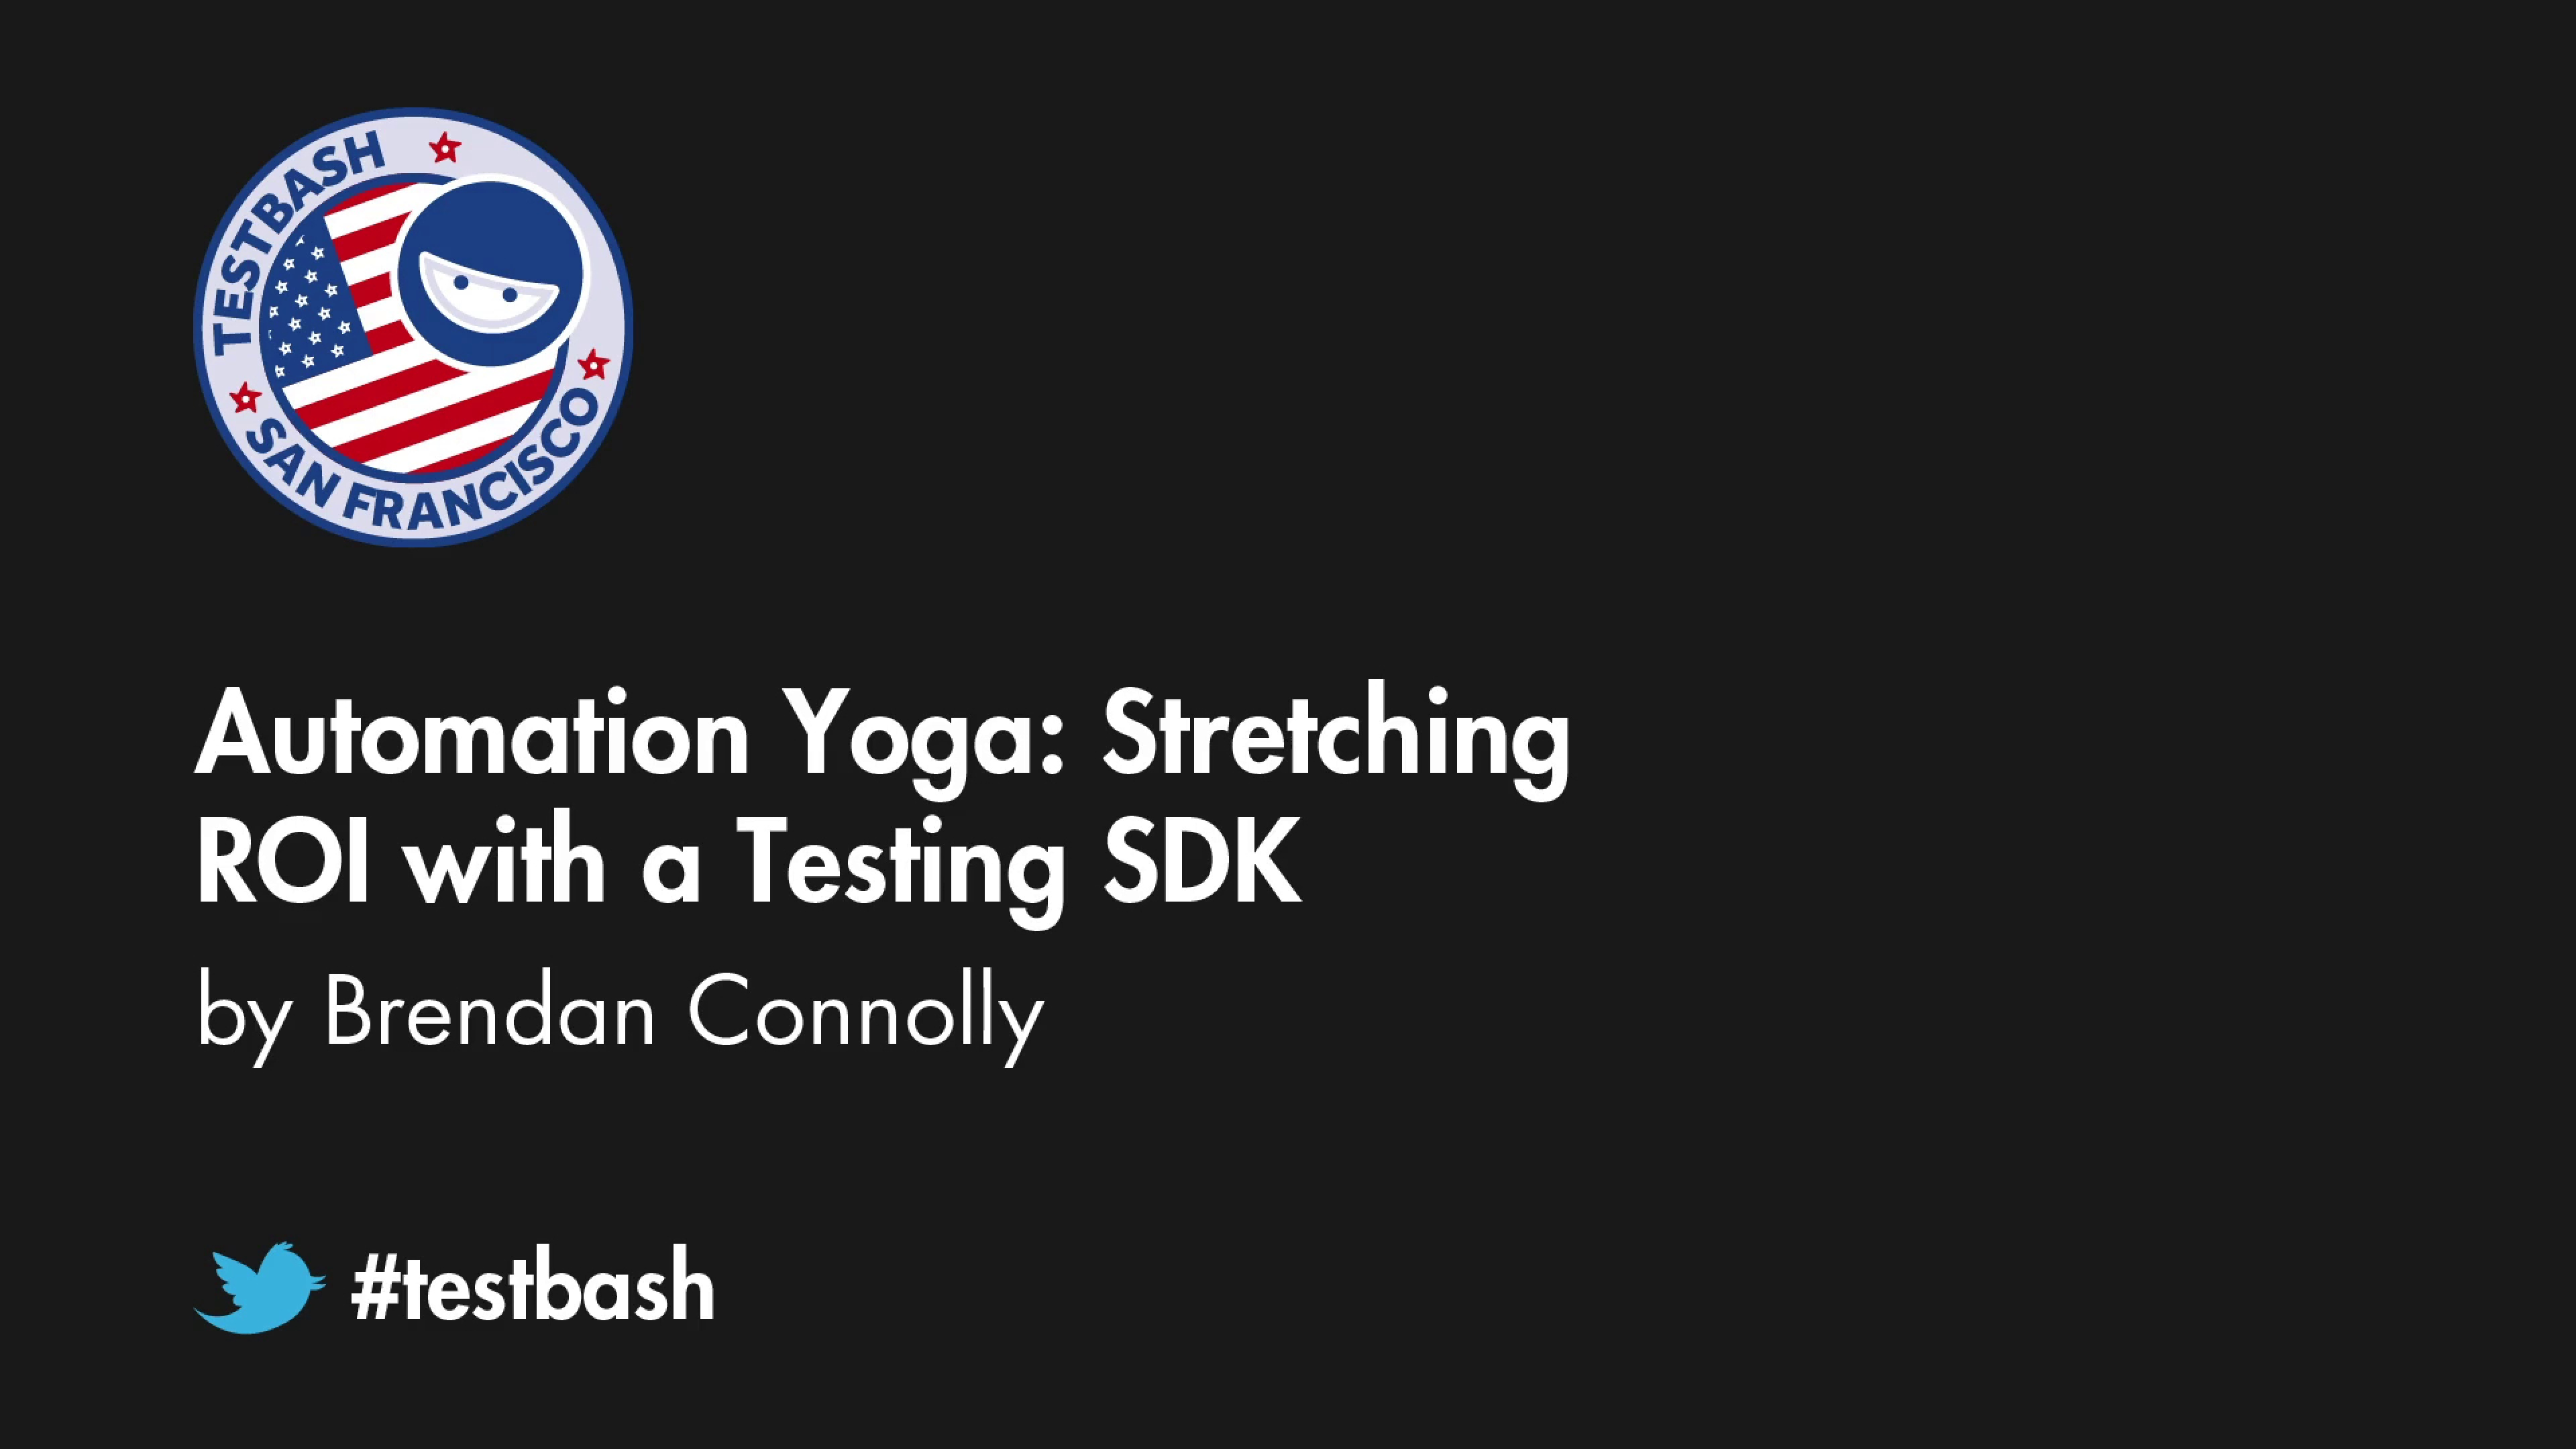 Automation Yoga: Stretching ROI with a Testing SDK - Brendan Connolly